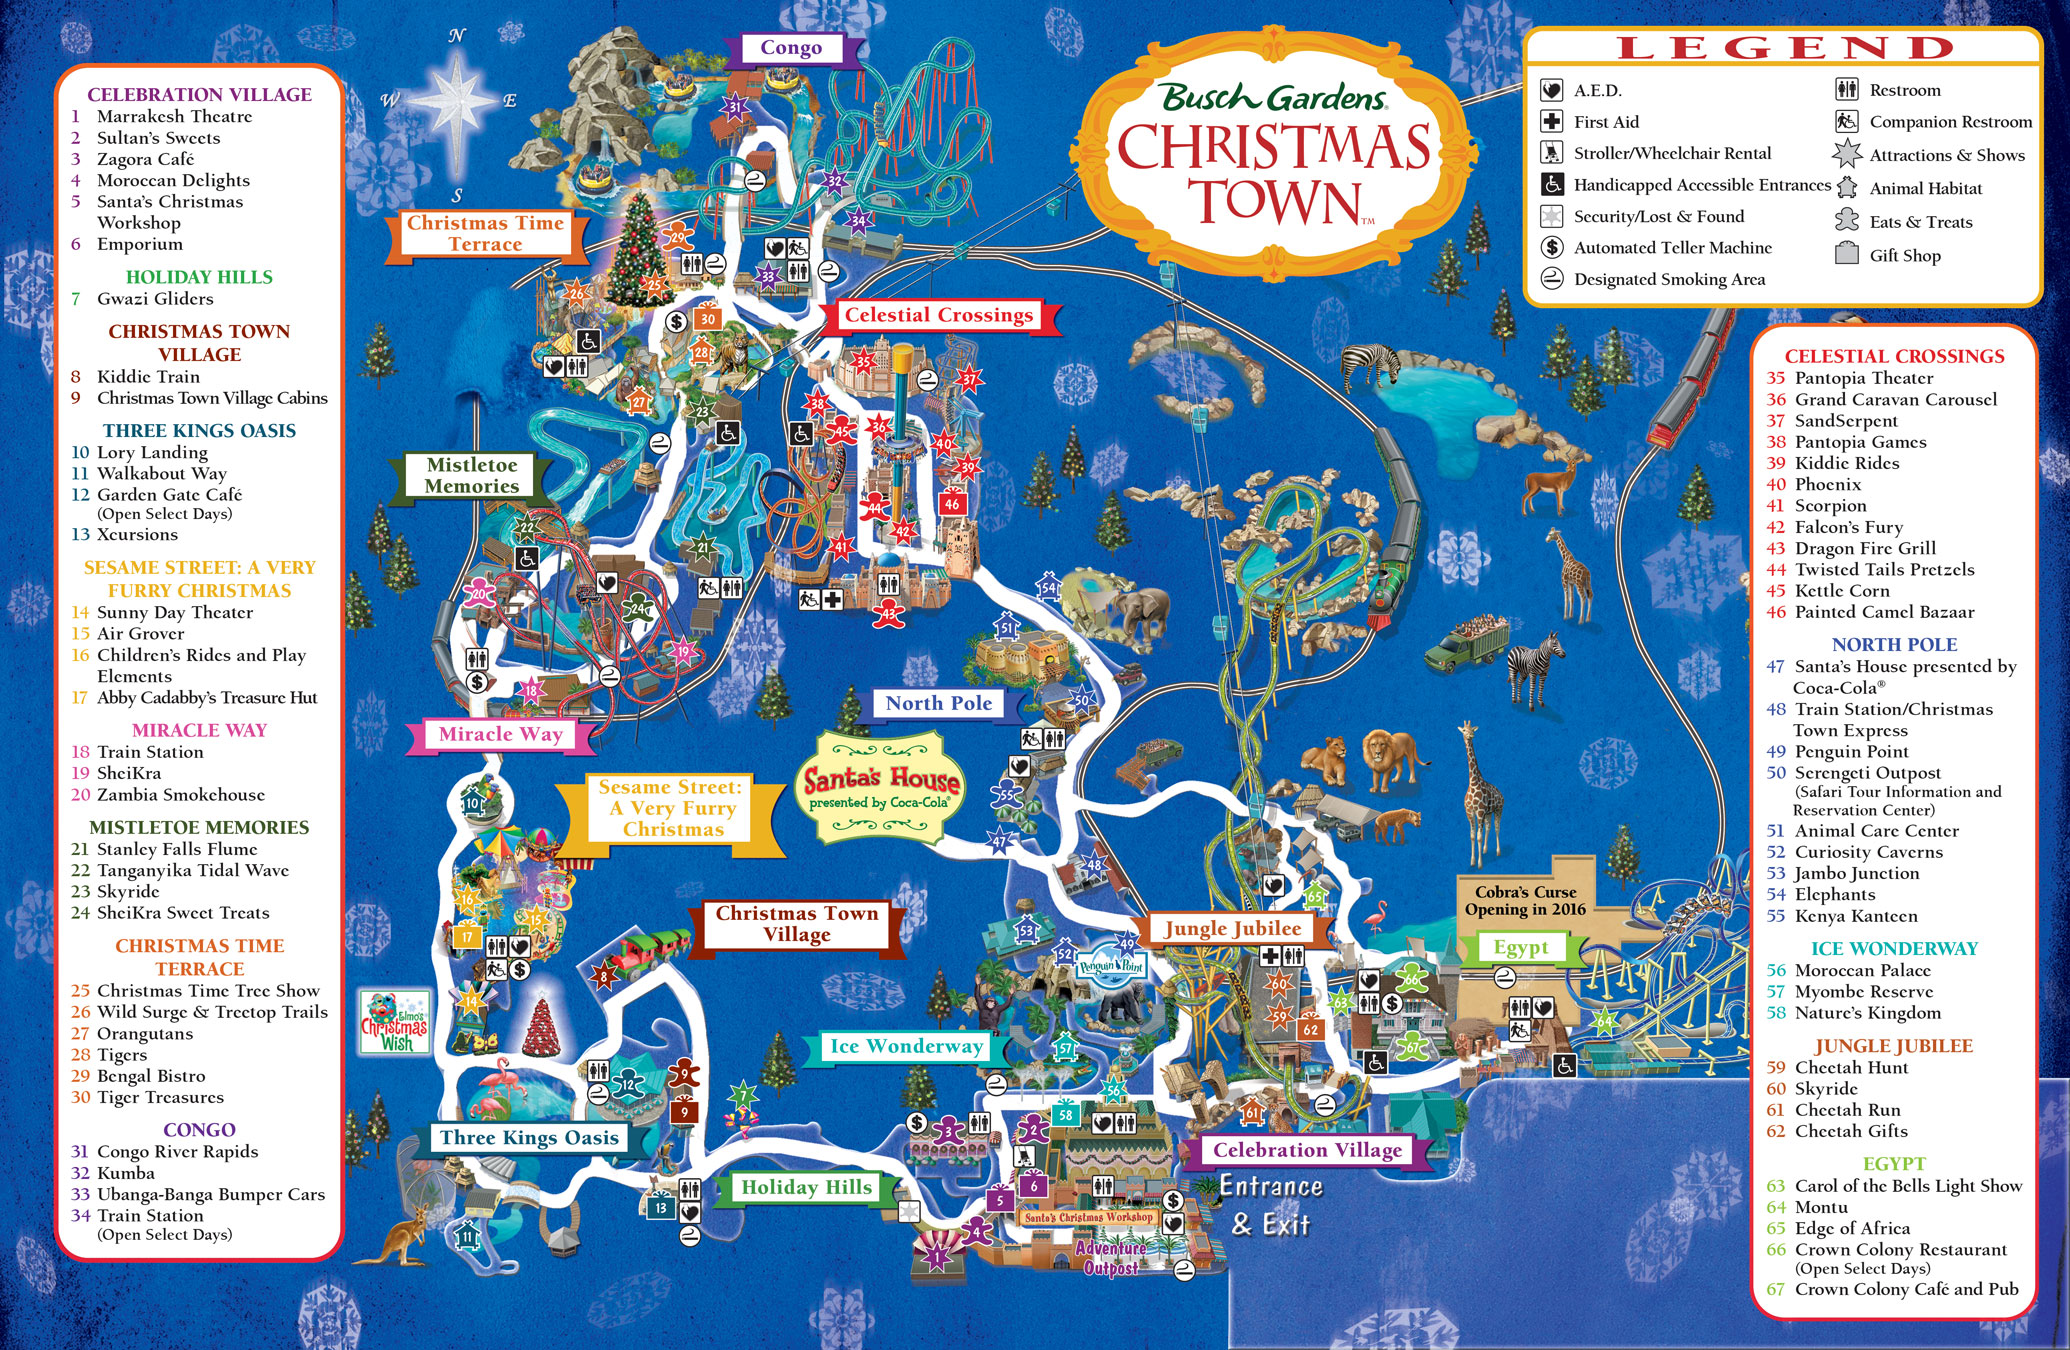 Christmas Town Florida.Busch Gardens Christmas Town Map 2015 On The Go In Mco